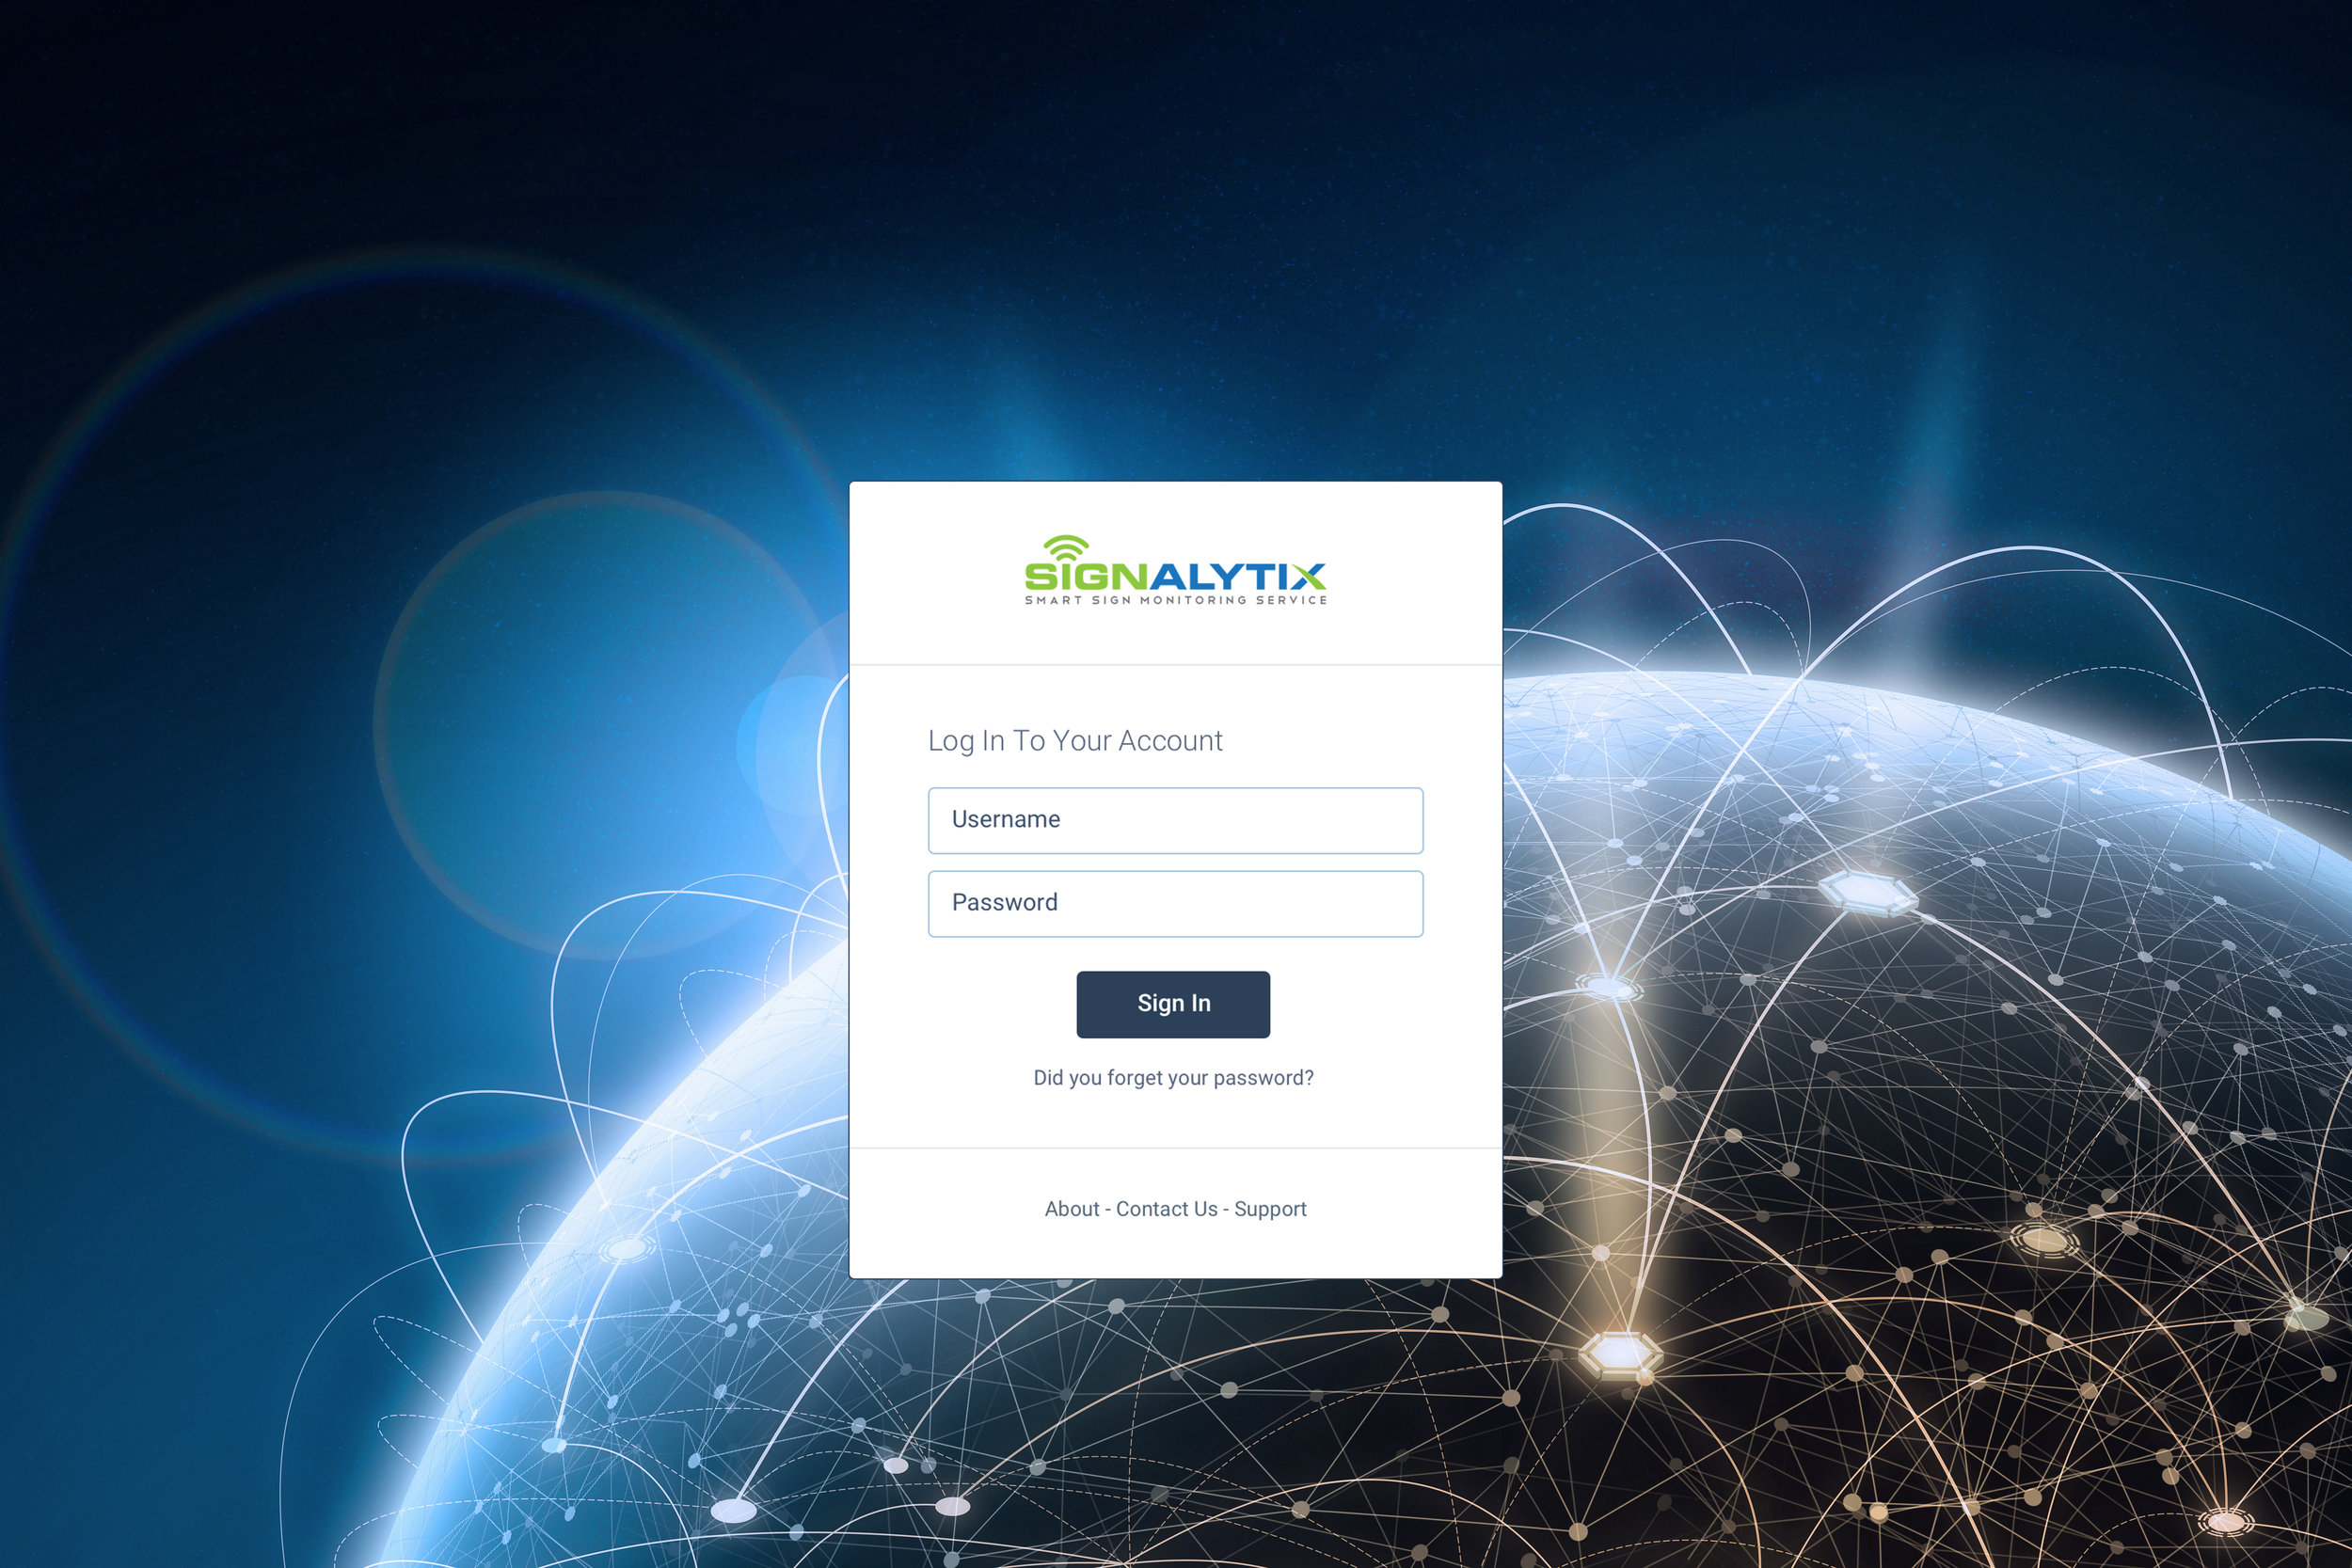 Signalytix uses a web-based dashboard that is accessible from any device with an internet connection.